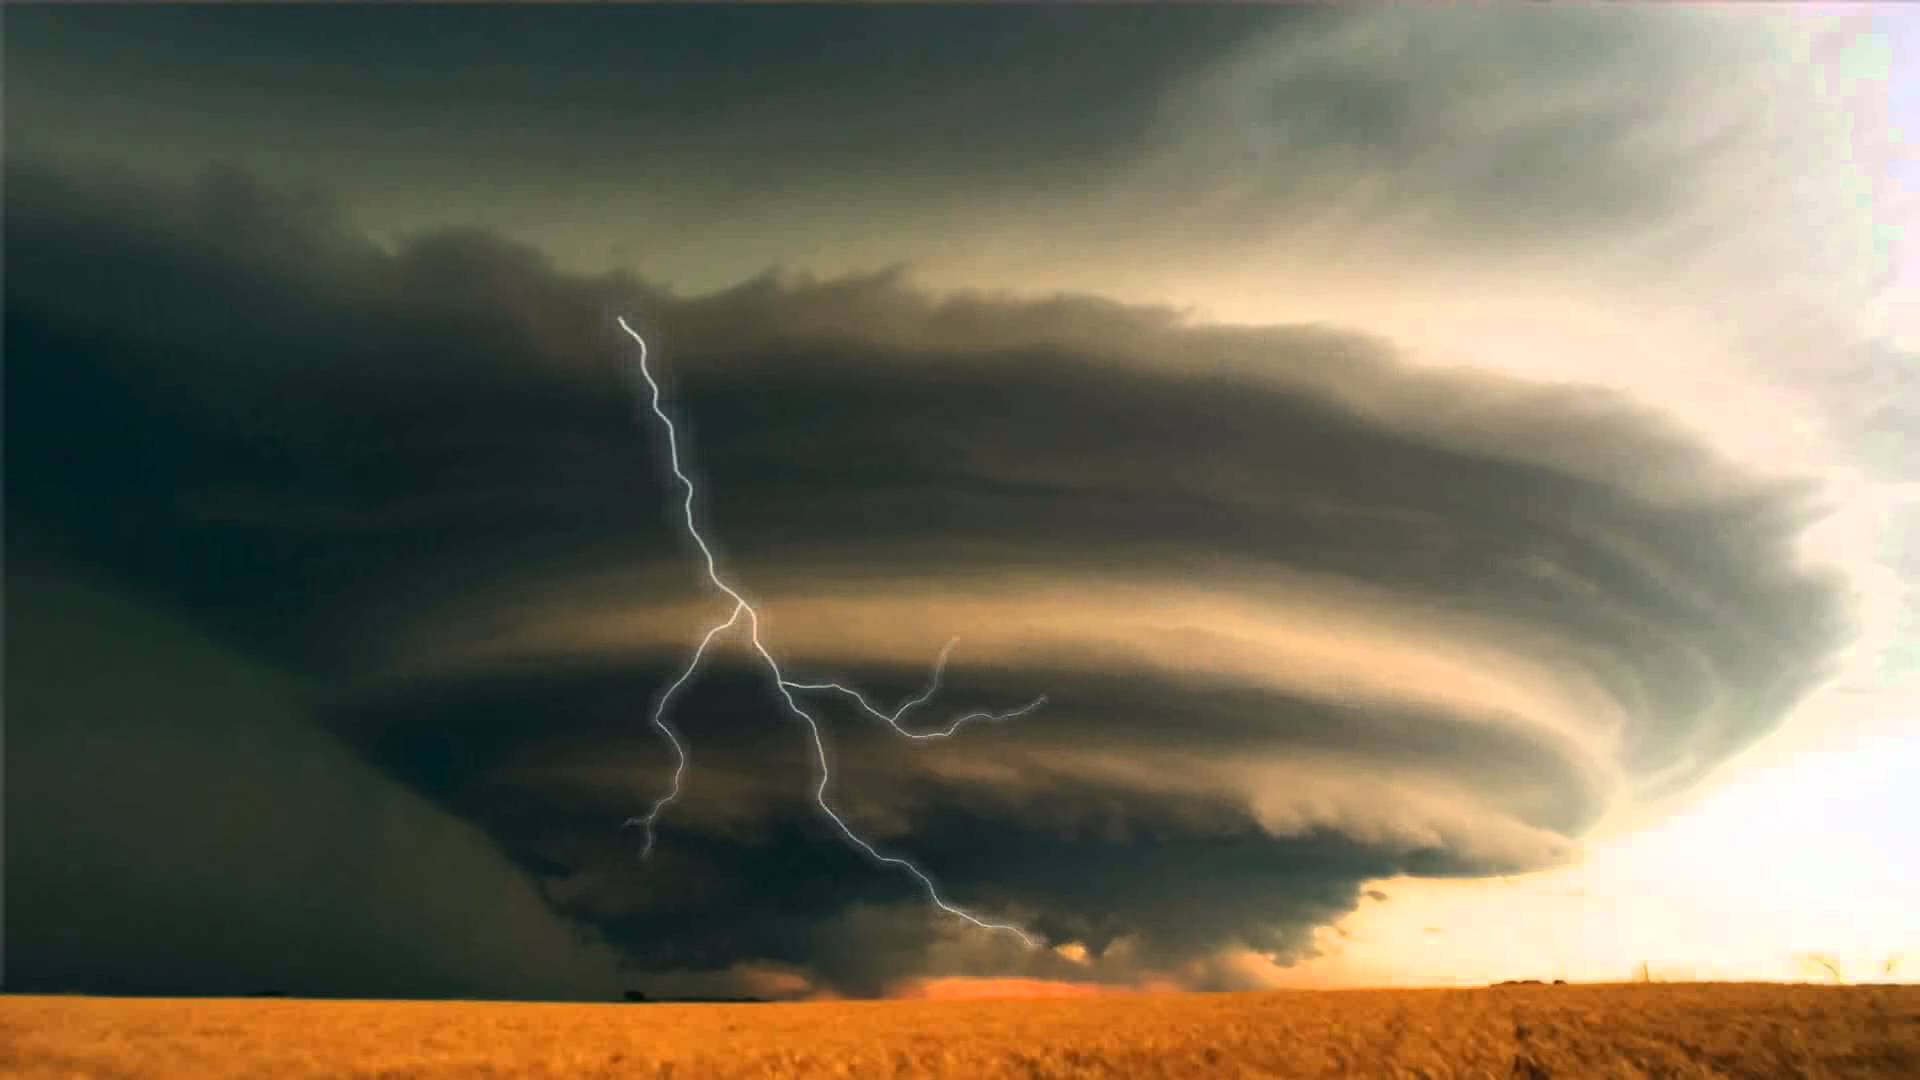 70 Moving Storm Wallpapers   Download at WallpaperBro 1920x1080